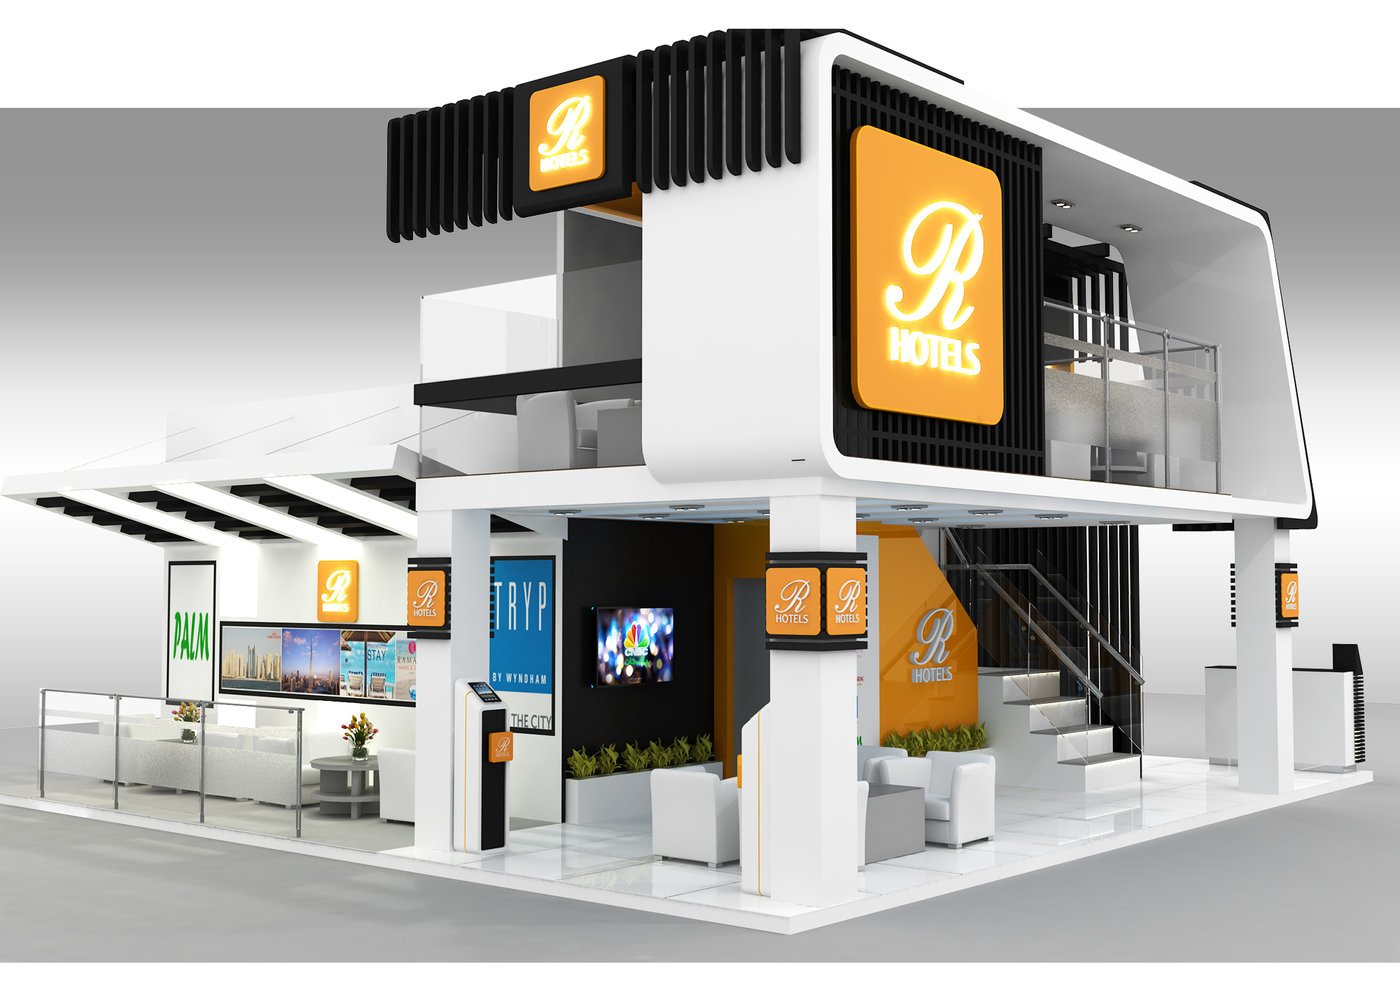 Exhibition Stand Double Decker : R hotel stand proposal atm 2015 double decker by rodel ofiaza at